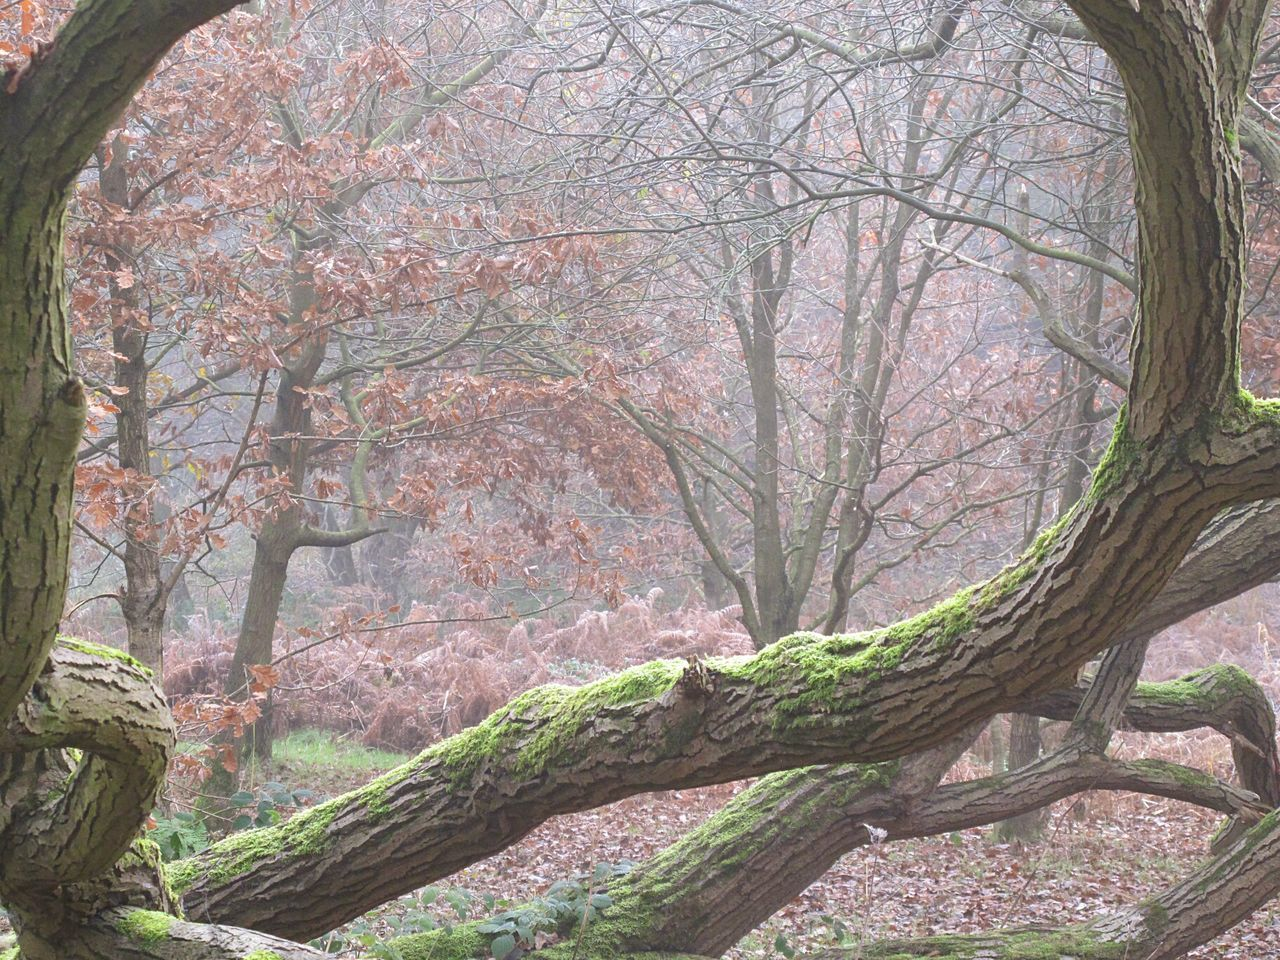 Fog Cold Temperature Autumnbeauty Autumn Leaves Valleys Woodlands EnchantedForest Fineartphotography Foggy Morning EyeEmbestshots Tranquility Outdoors Beauty In Nature Tranquil Scene Tree Frosty Days Non-urban Scene Winter Is Coming WoodLand Foggymornings Change Autumn No People Scenics Branch Tree